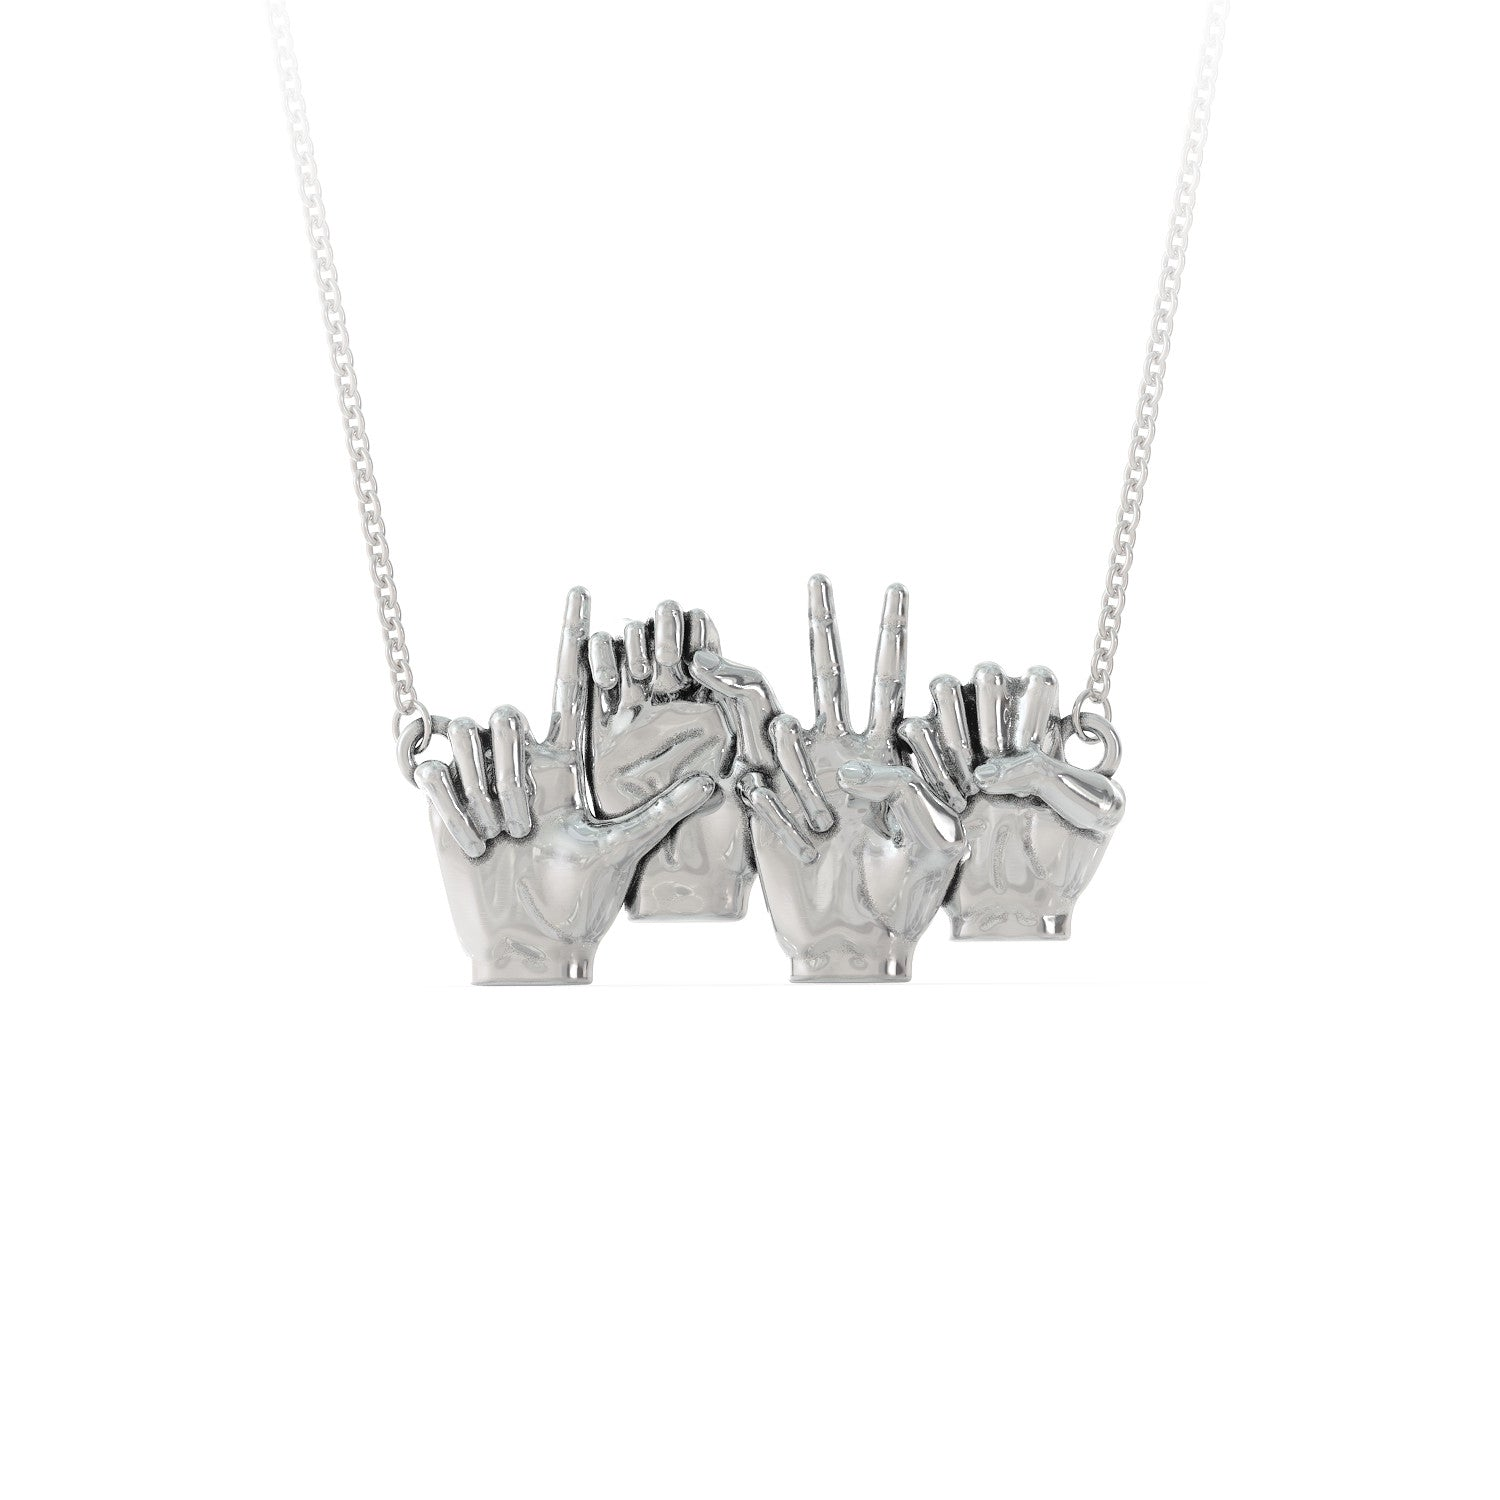 LOVE - Sign Language Necklace - LIMITED EDITION